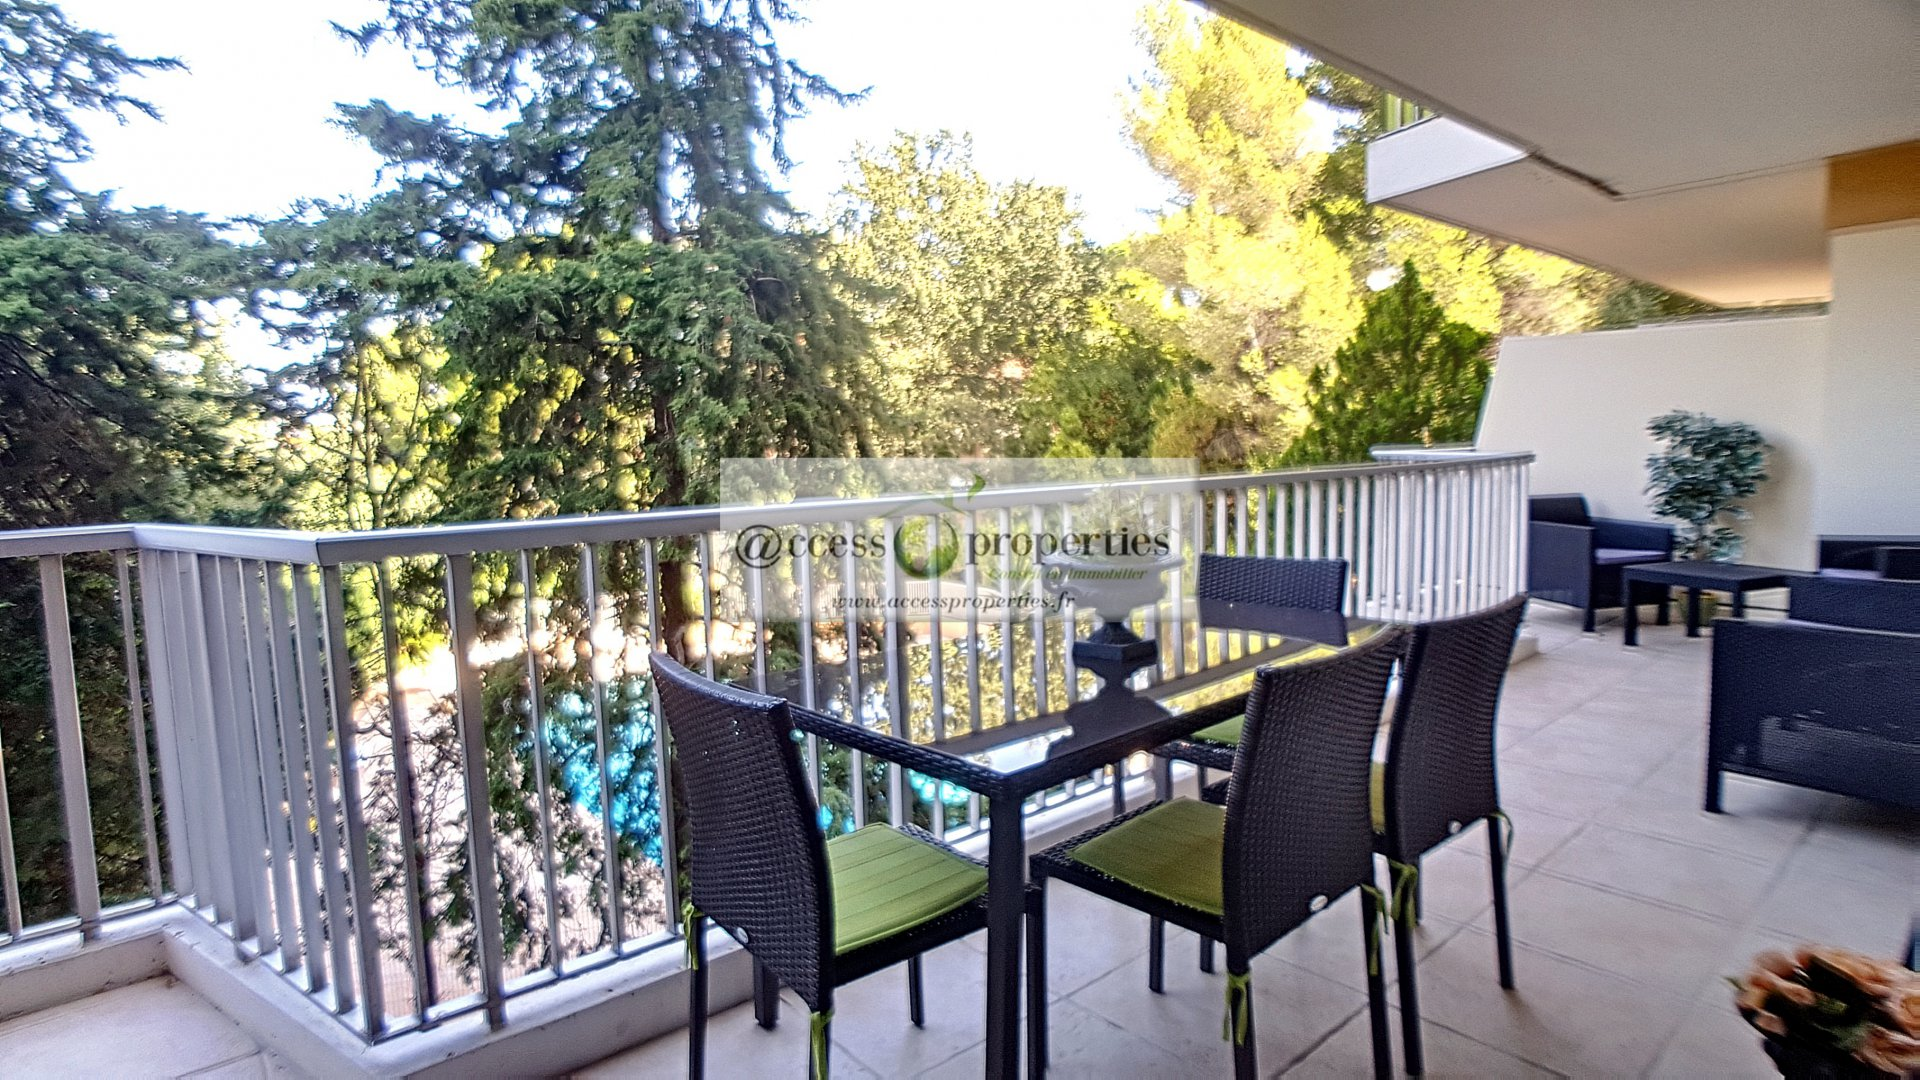 Seasonal rental Apartment - Antibes Le Puy